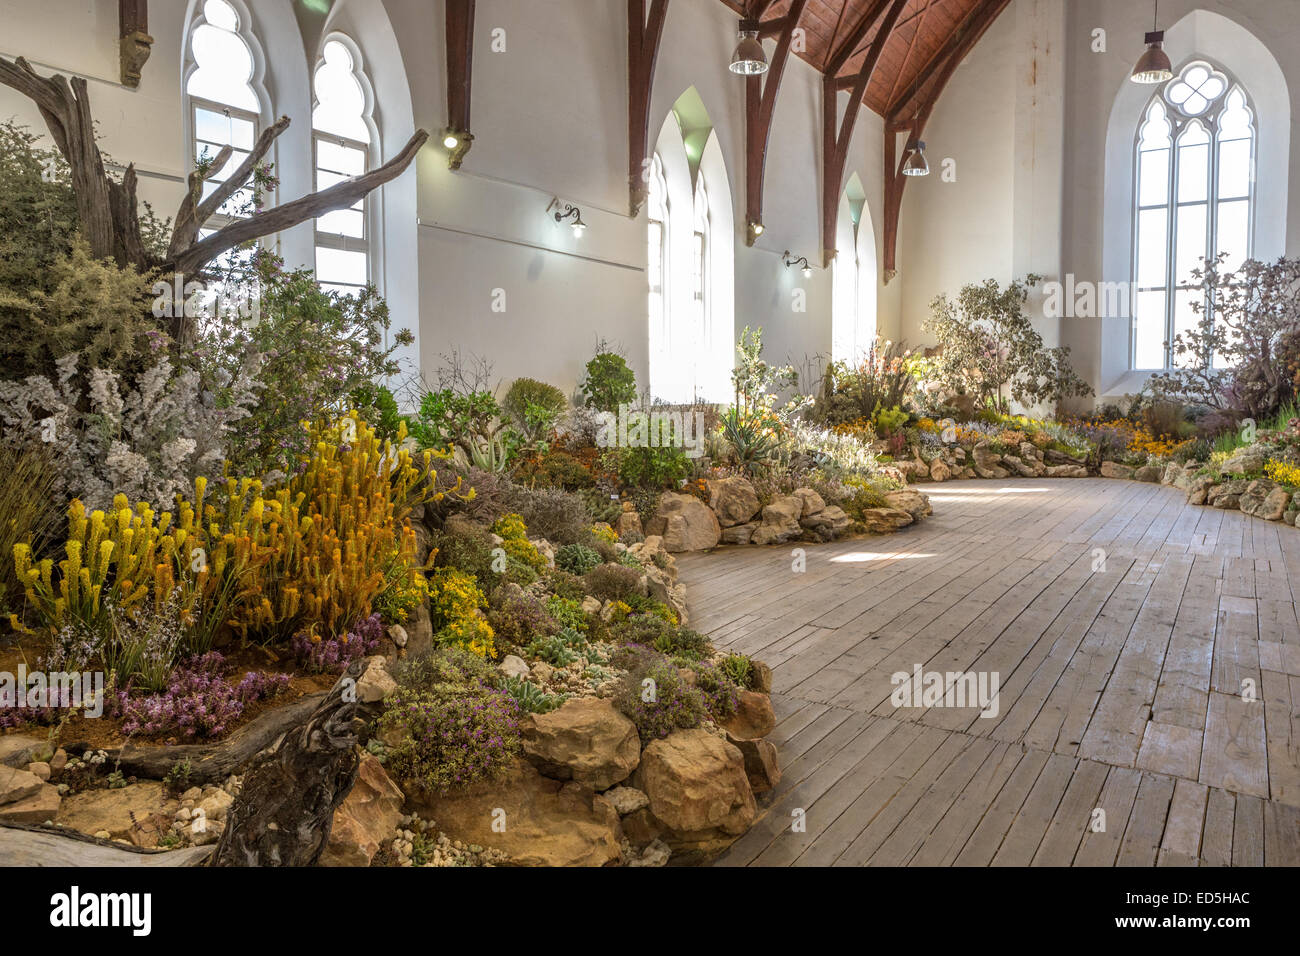 Clanwilliam wild flower show western cape South Africa - Stock Image